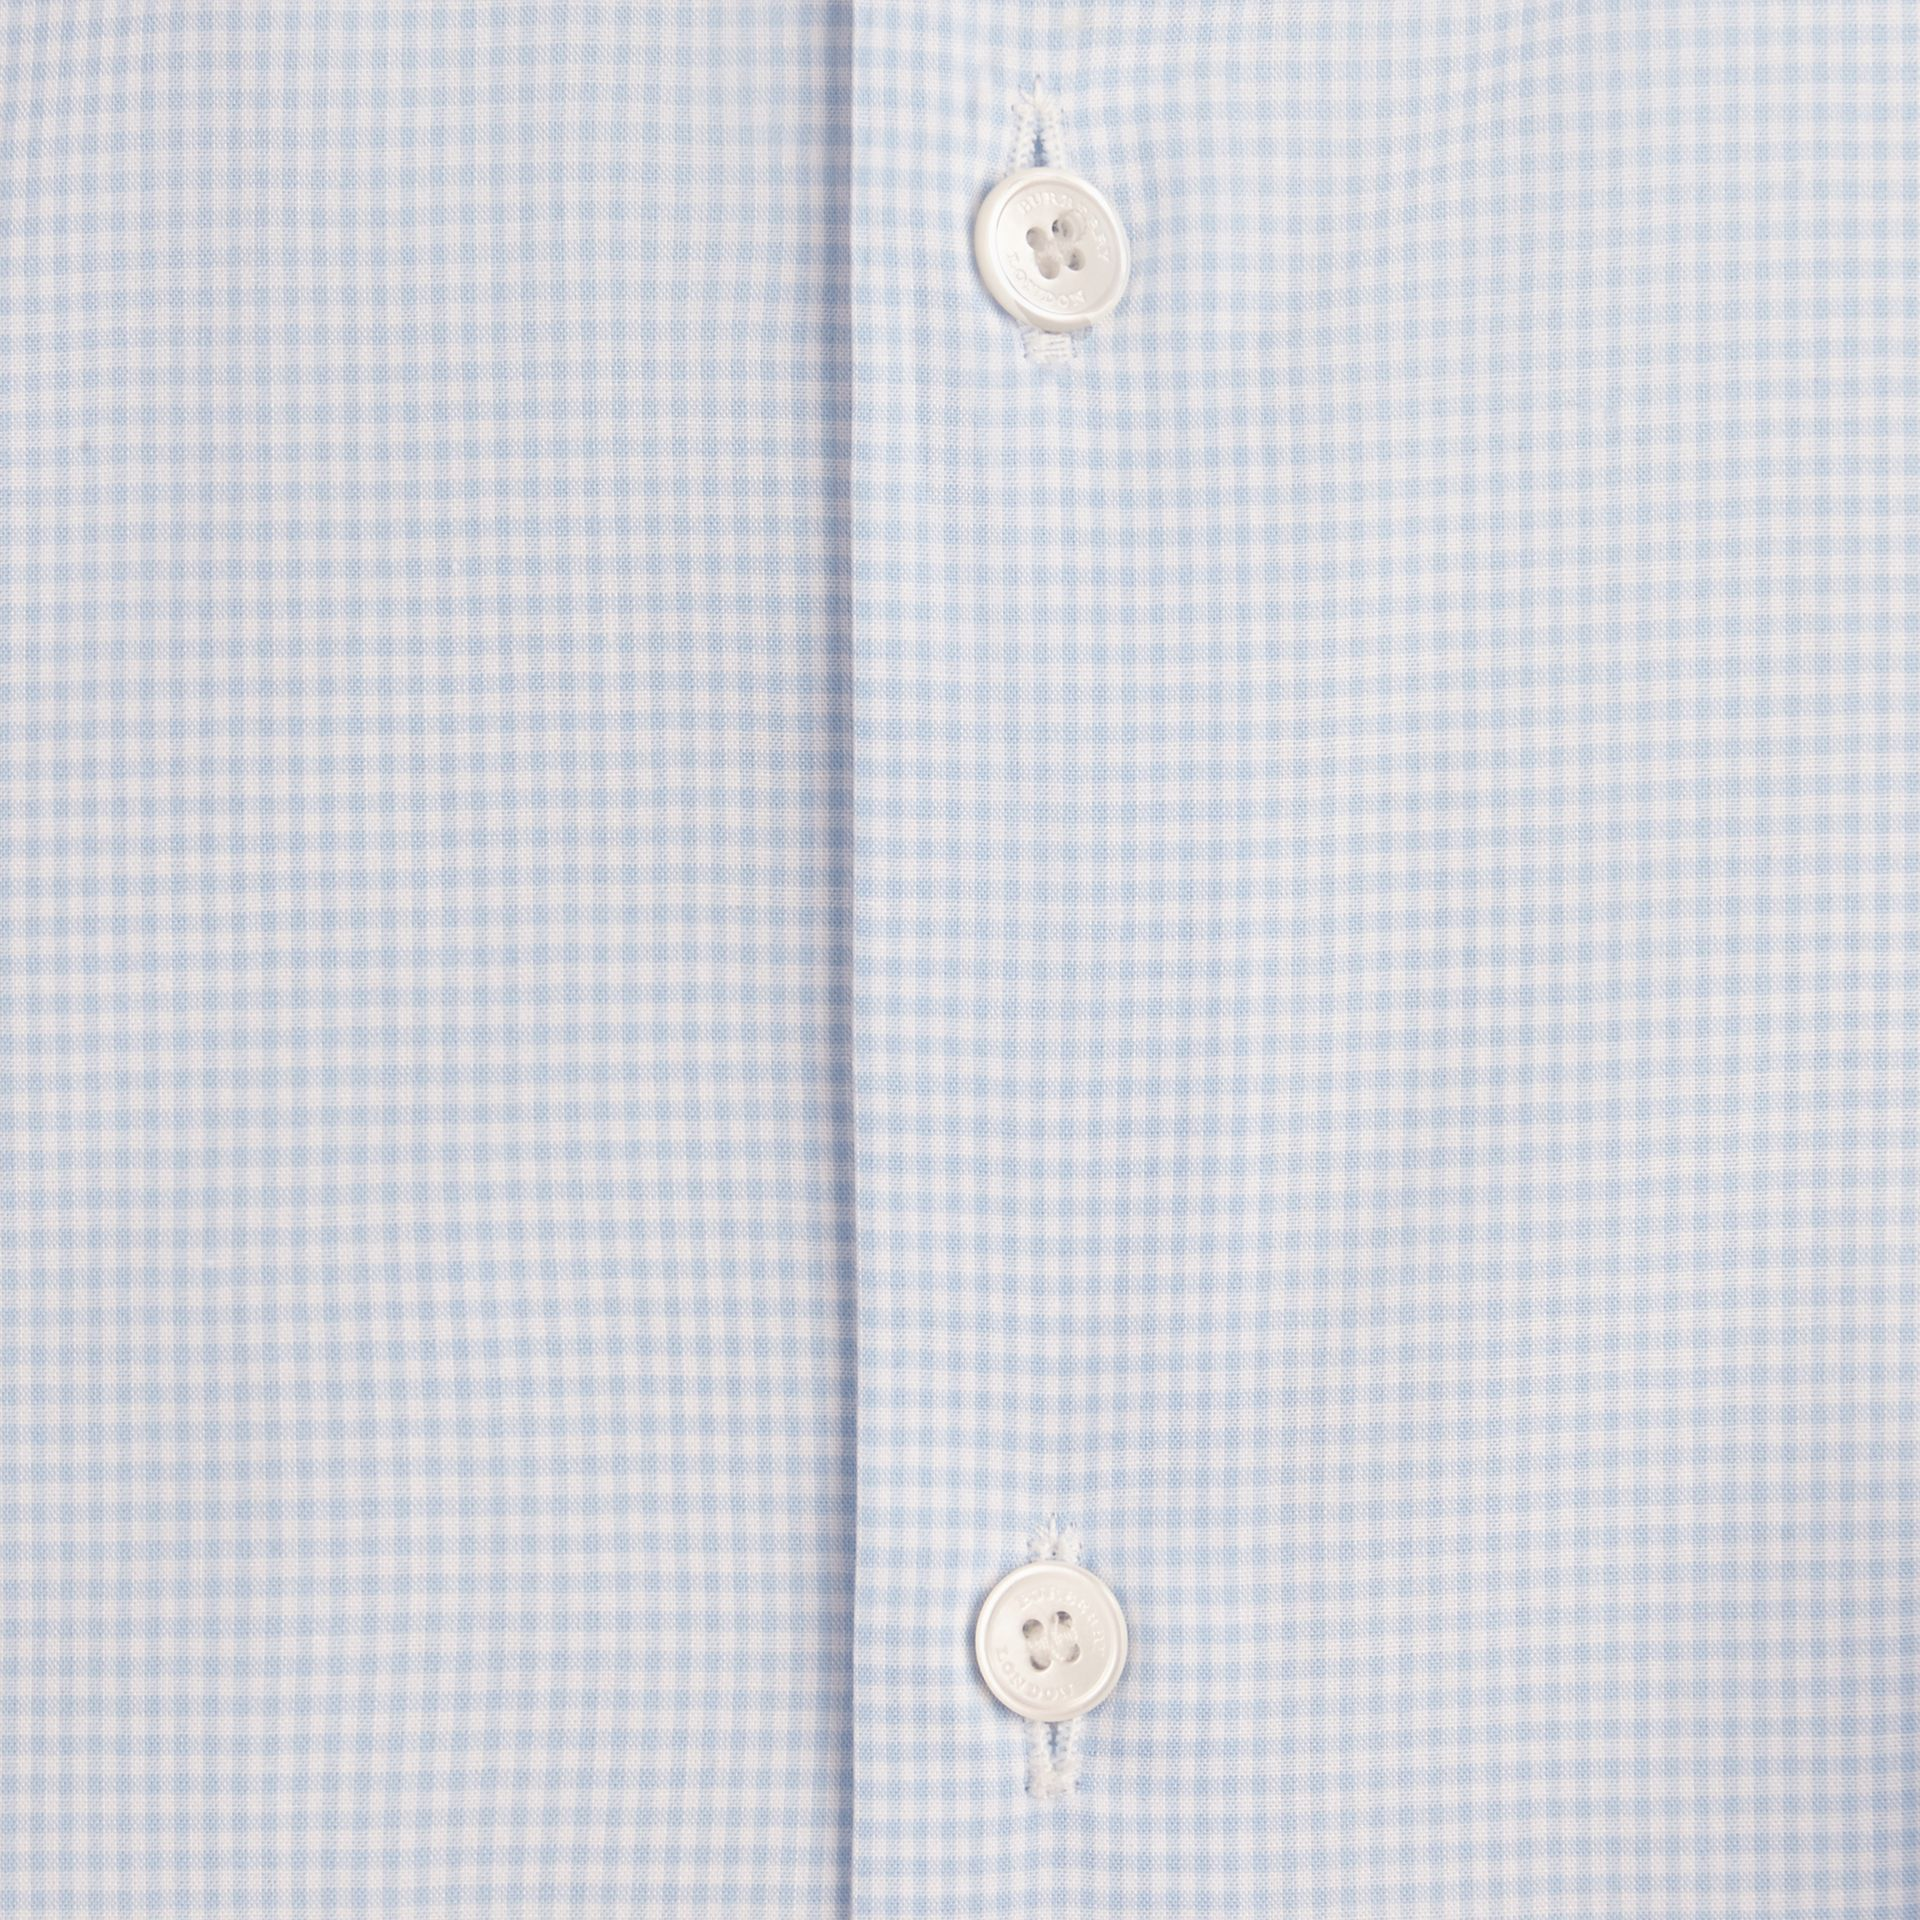 City blue Slim Fit Button-down Collar Gingham Cotton Poplin Shirt City Blue - gallery image 2